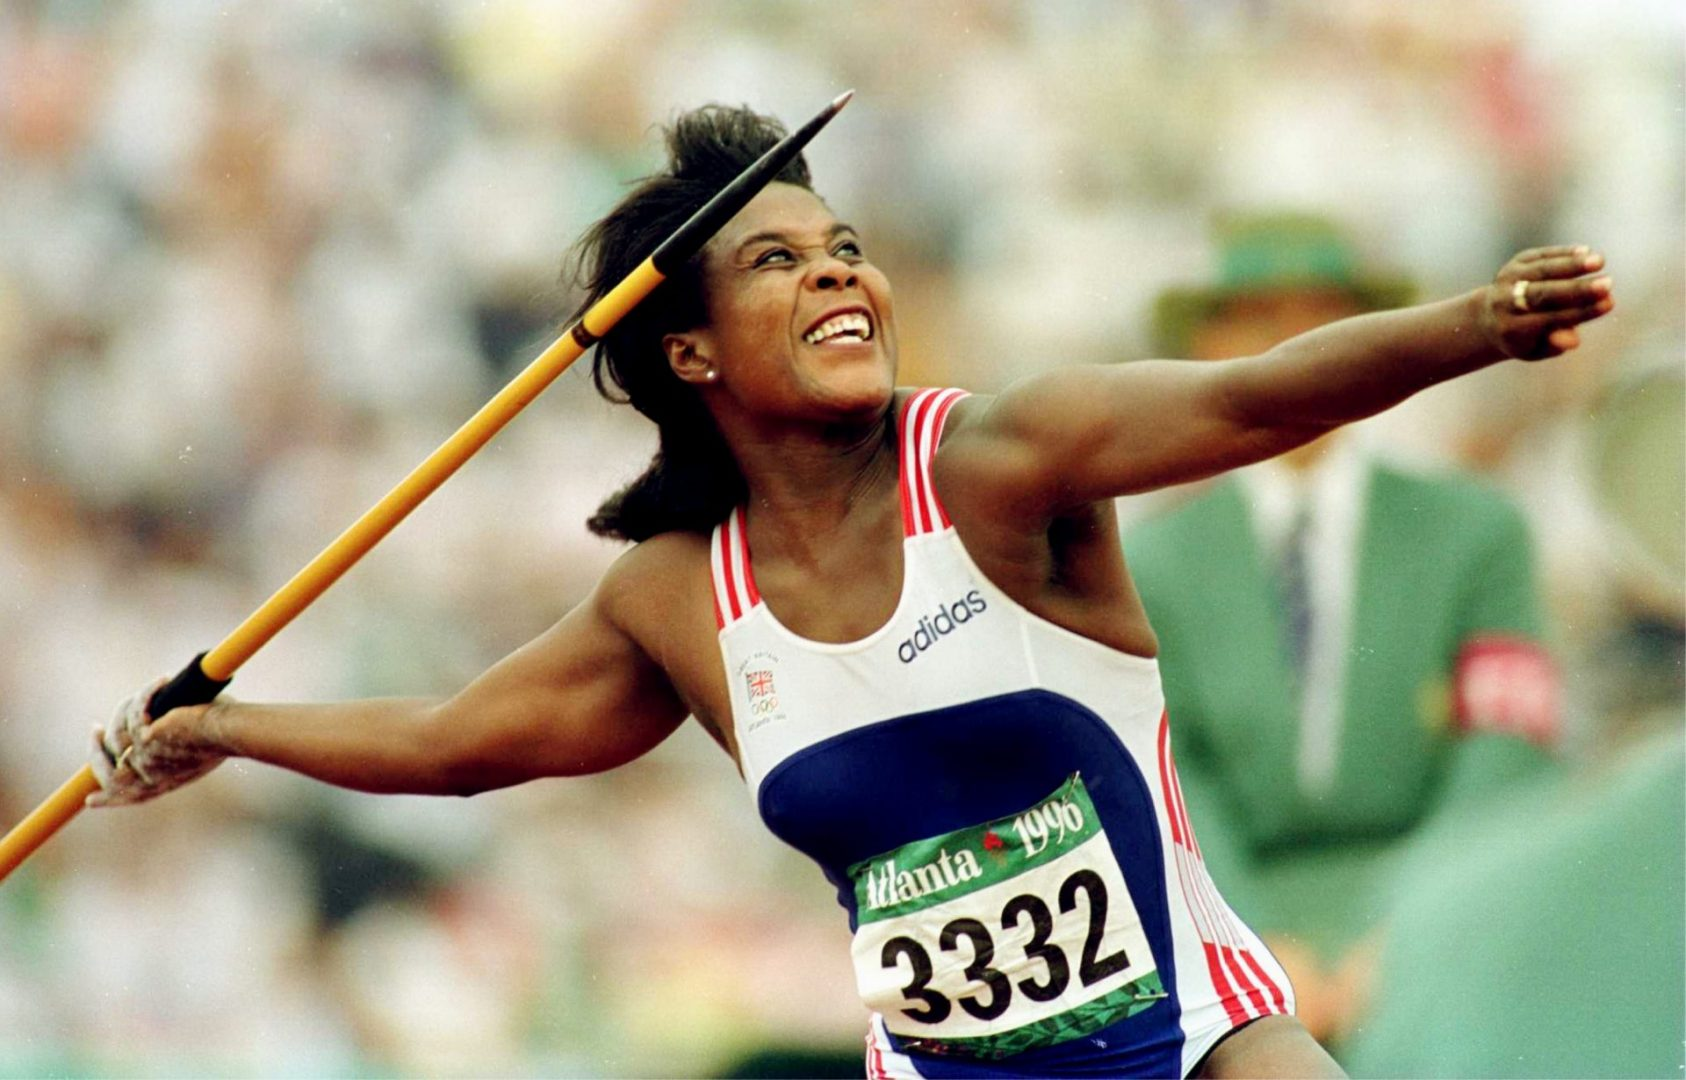 Tessa Sanderson of Great Britain rears back for a throw during the women''s javelin qualifying at Olympic Stadium at the 1996 centennial Olympic Games in Atlanta, Georgia.